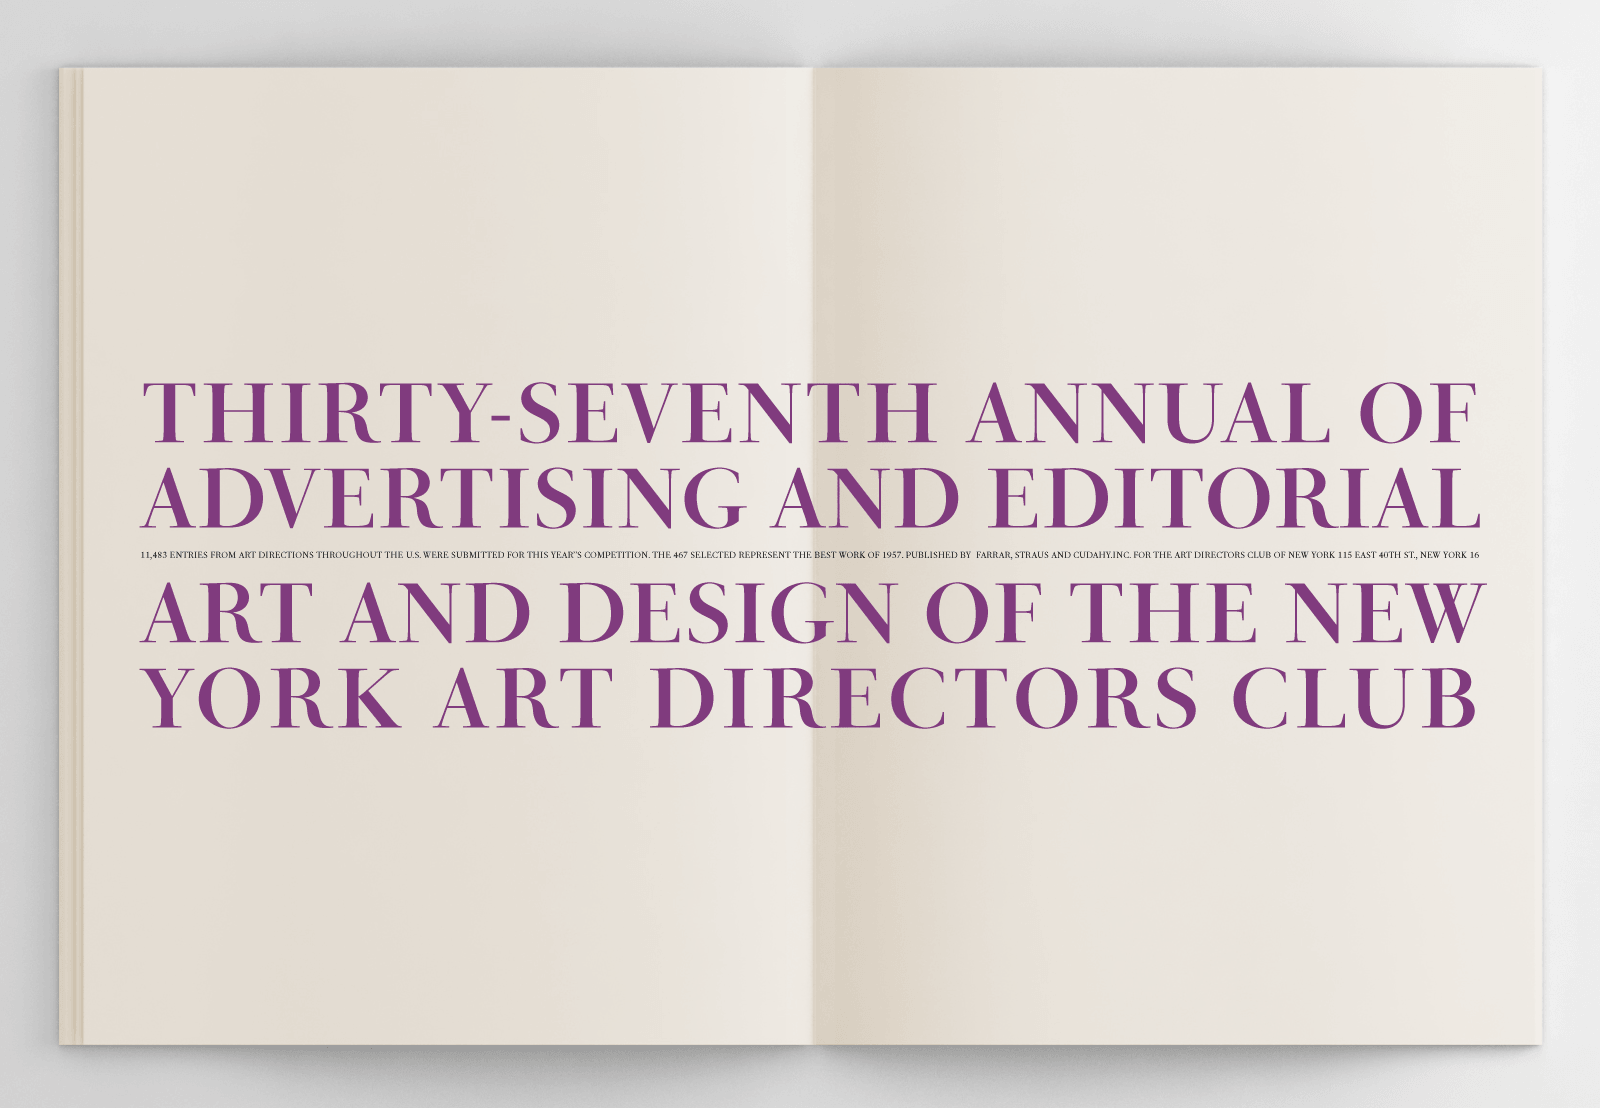 Project: ADC 37th Annual of Advertising by Herb Lubalin, George Lois